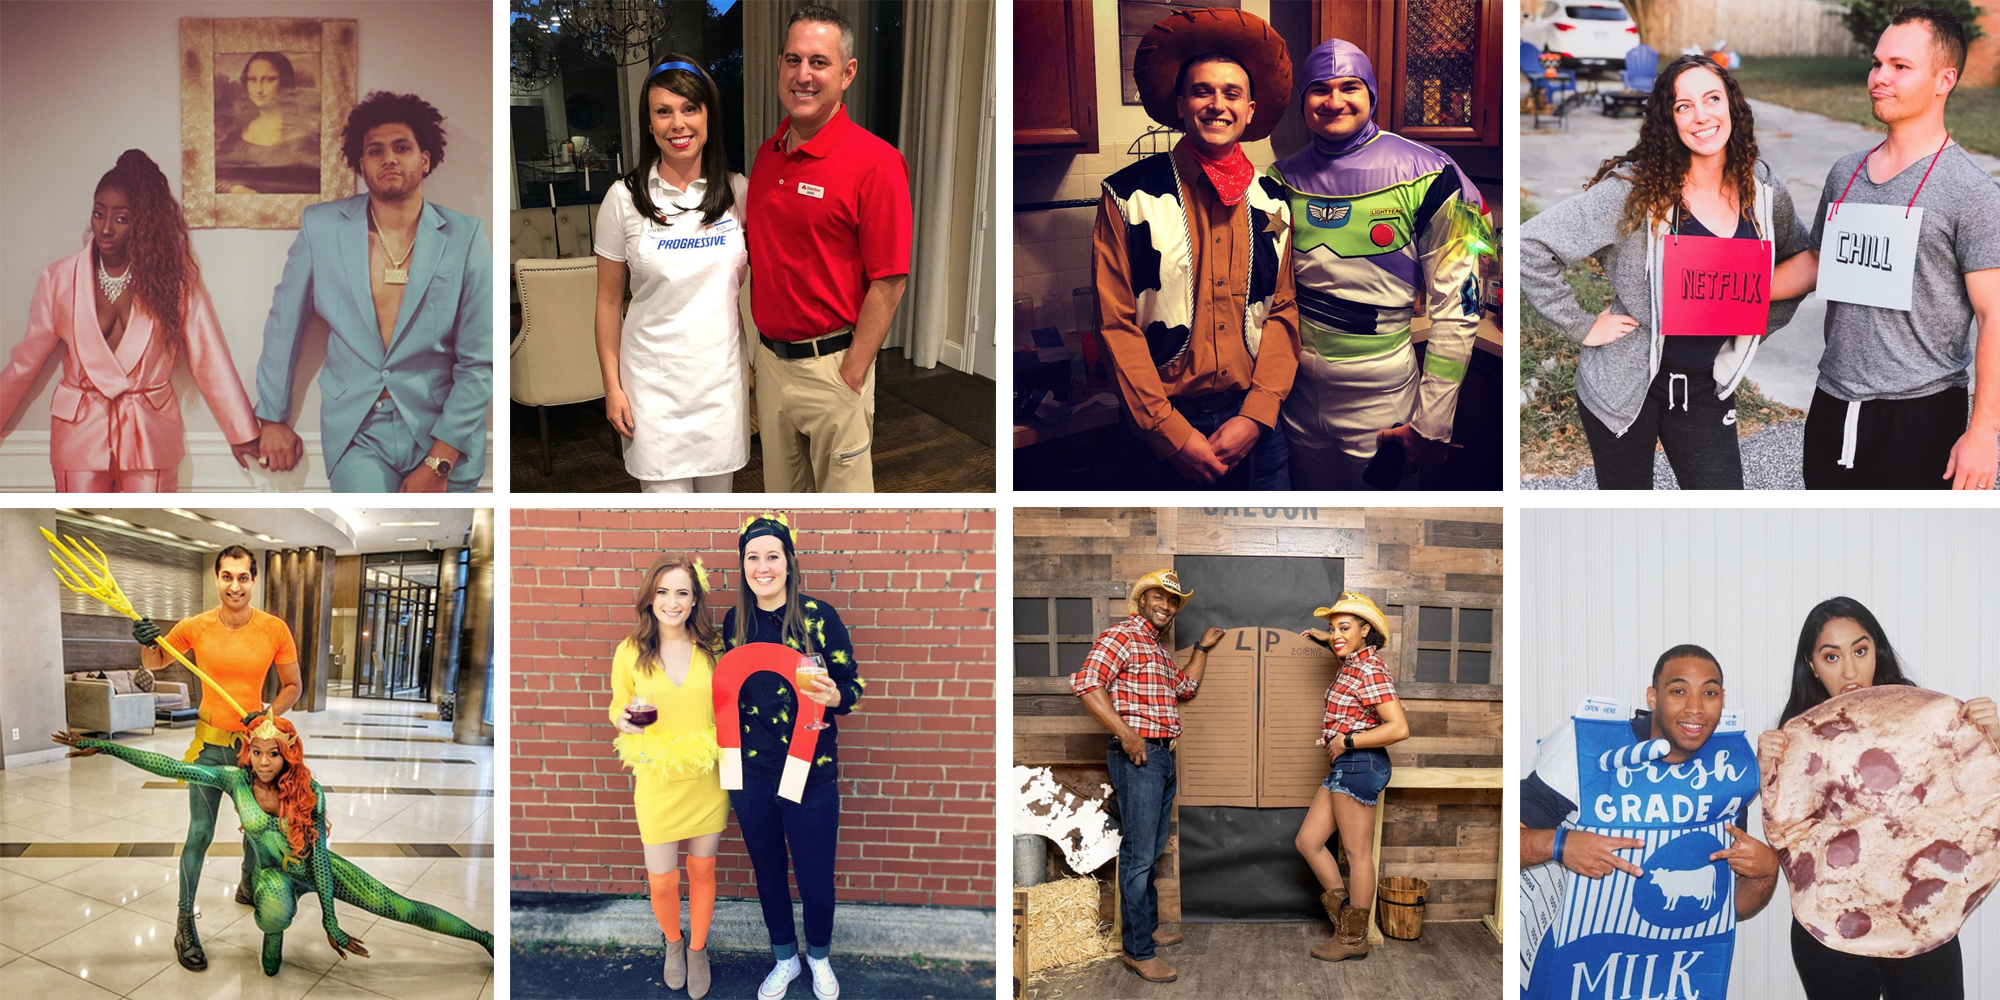 60 Best Couples Halloween Costumes 2019 , Funny Couples Costumes